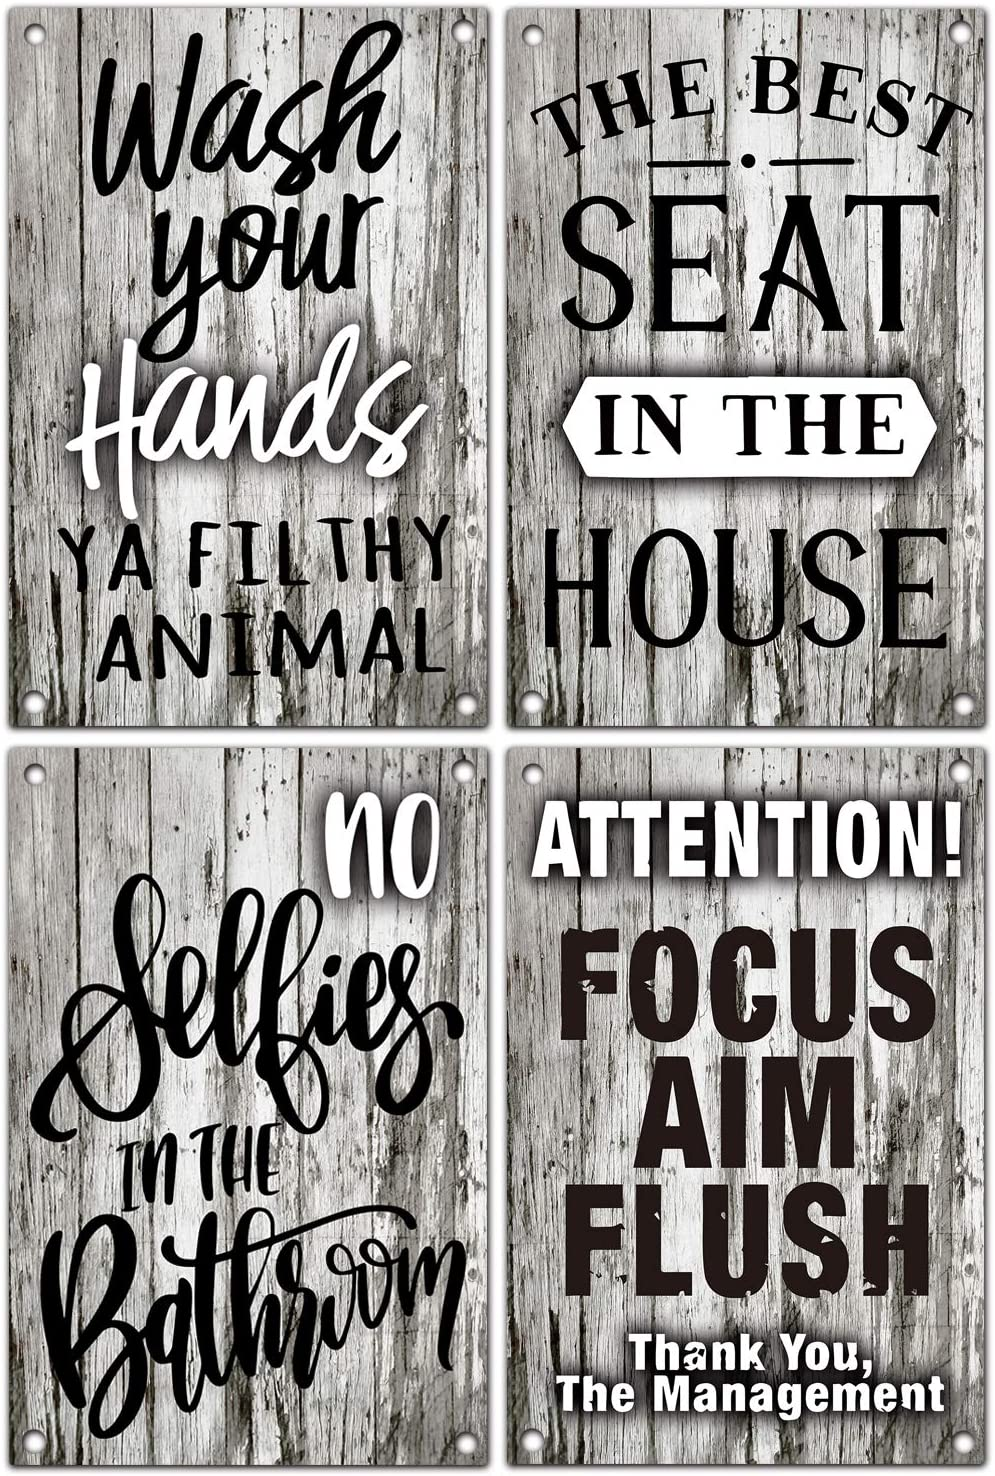 vizuzi Funny Bathroom Quote Vintage Farmhouse Metal Tin Bathroom Humor Signs, Decor for Home, Restaurant, or Business, Pack of 4